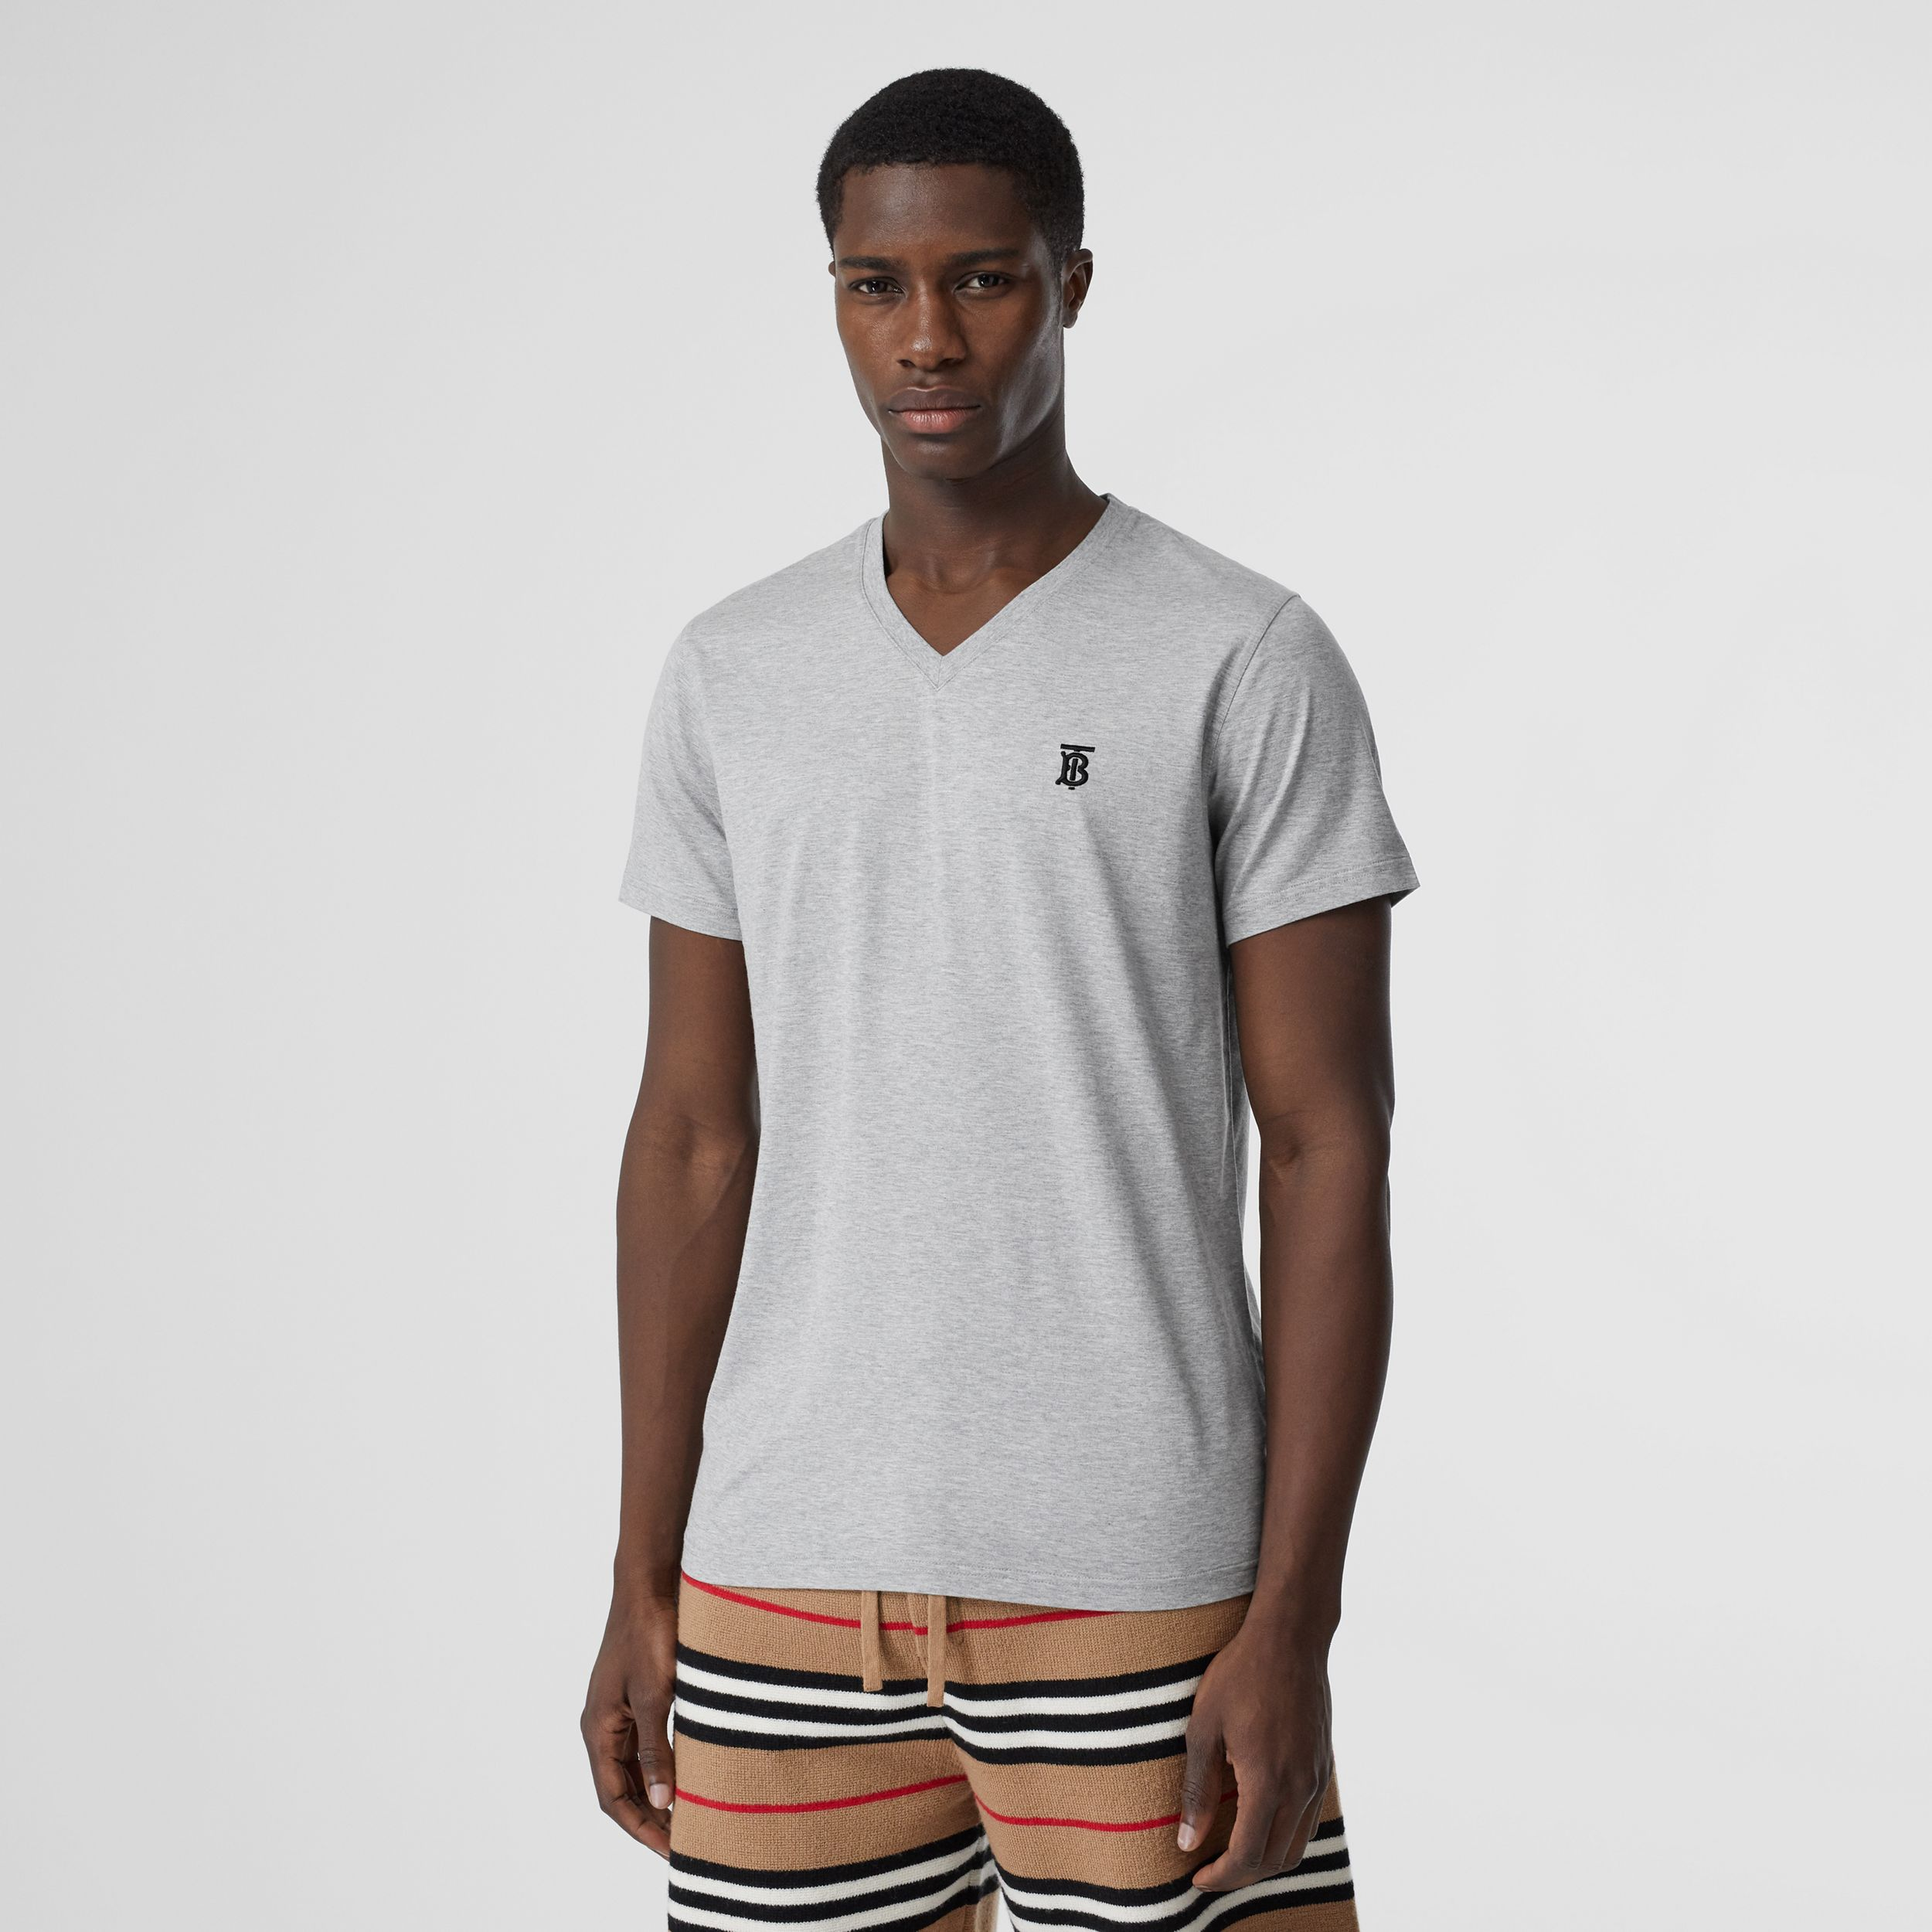 Monogram Motif Cotton V-neck T-shirt in Pale Grey Melange - Men | Burberry United Kingdom - 1